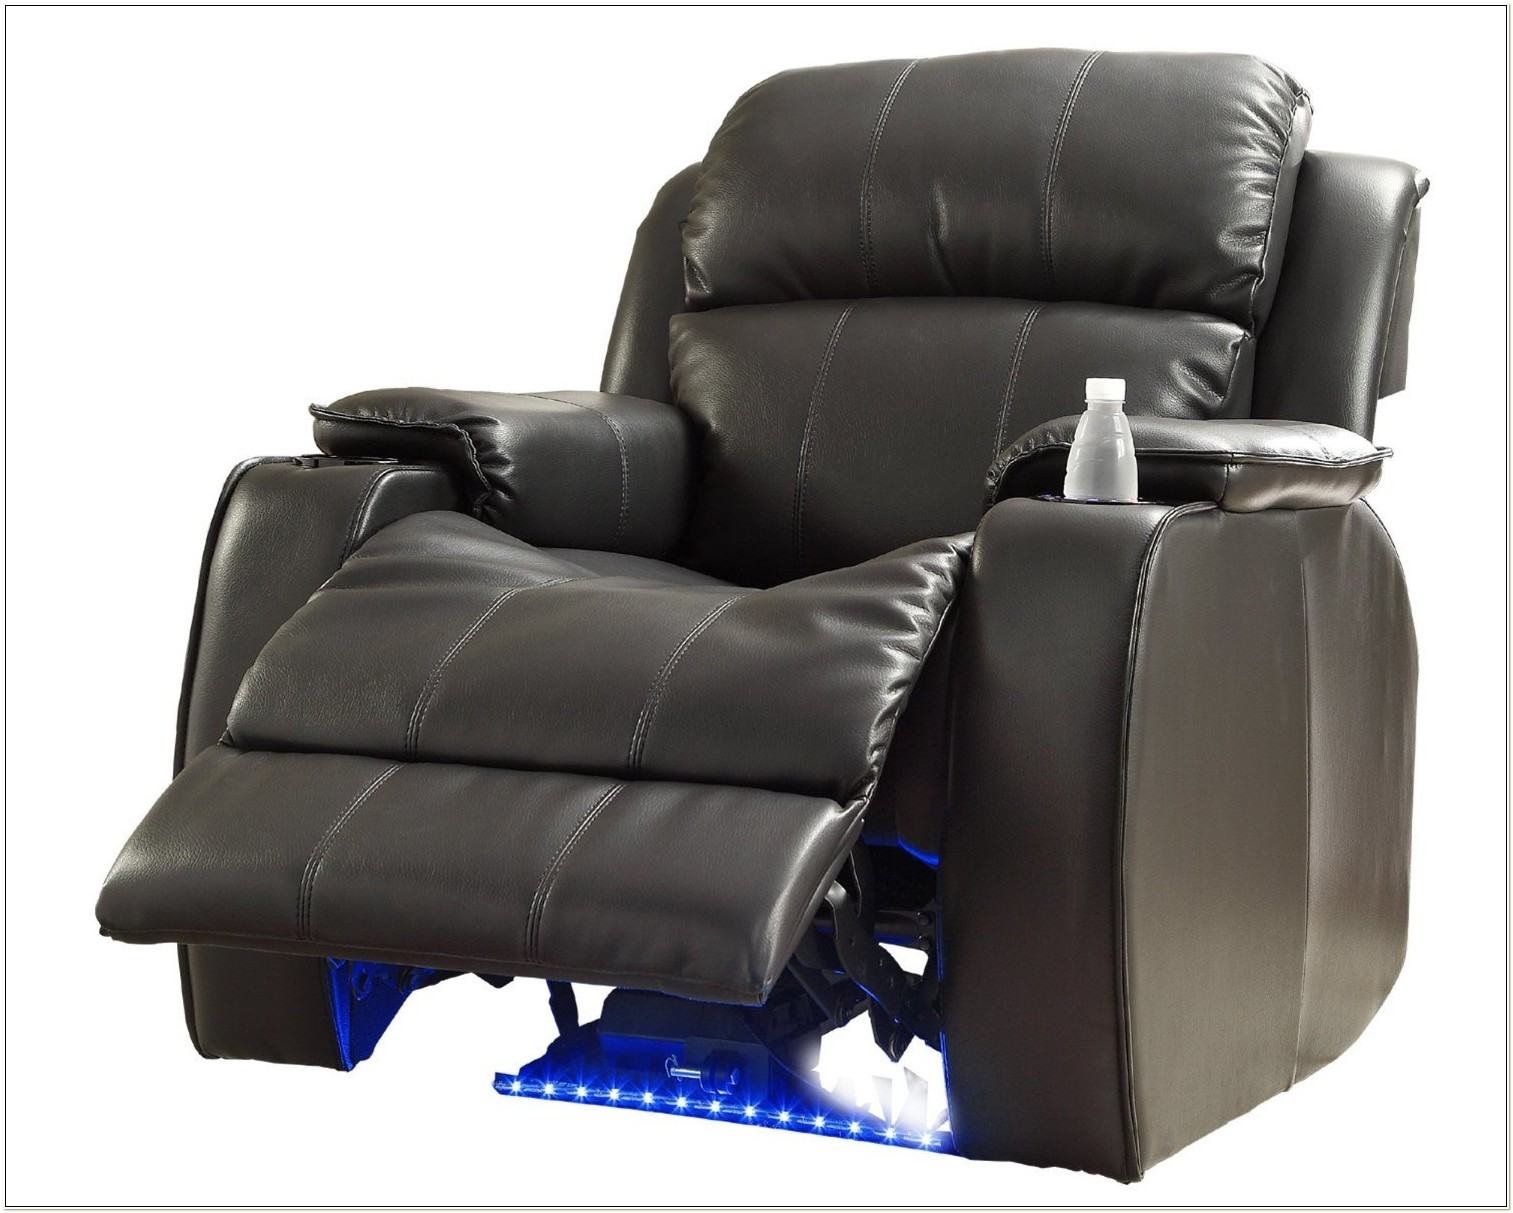 Recliner Chairs For The Elderly Bristol